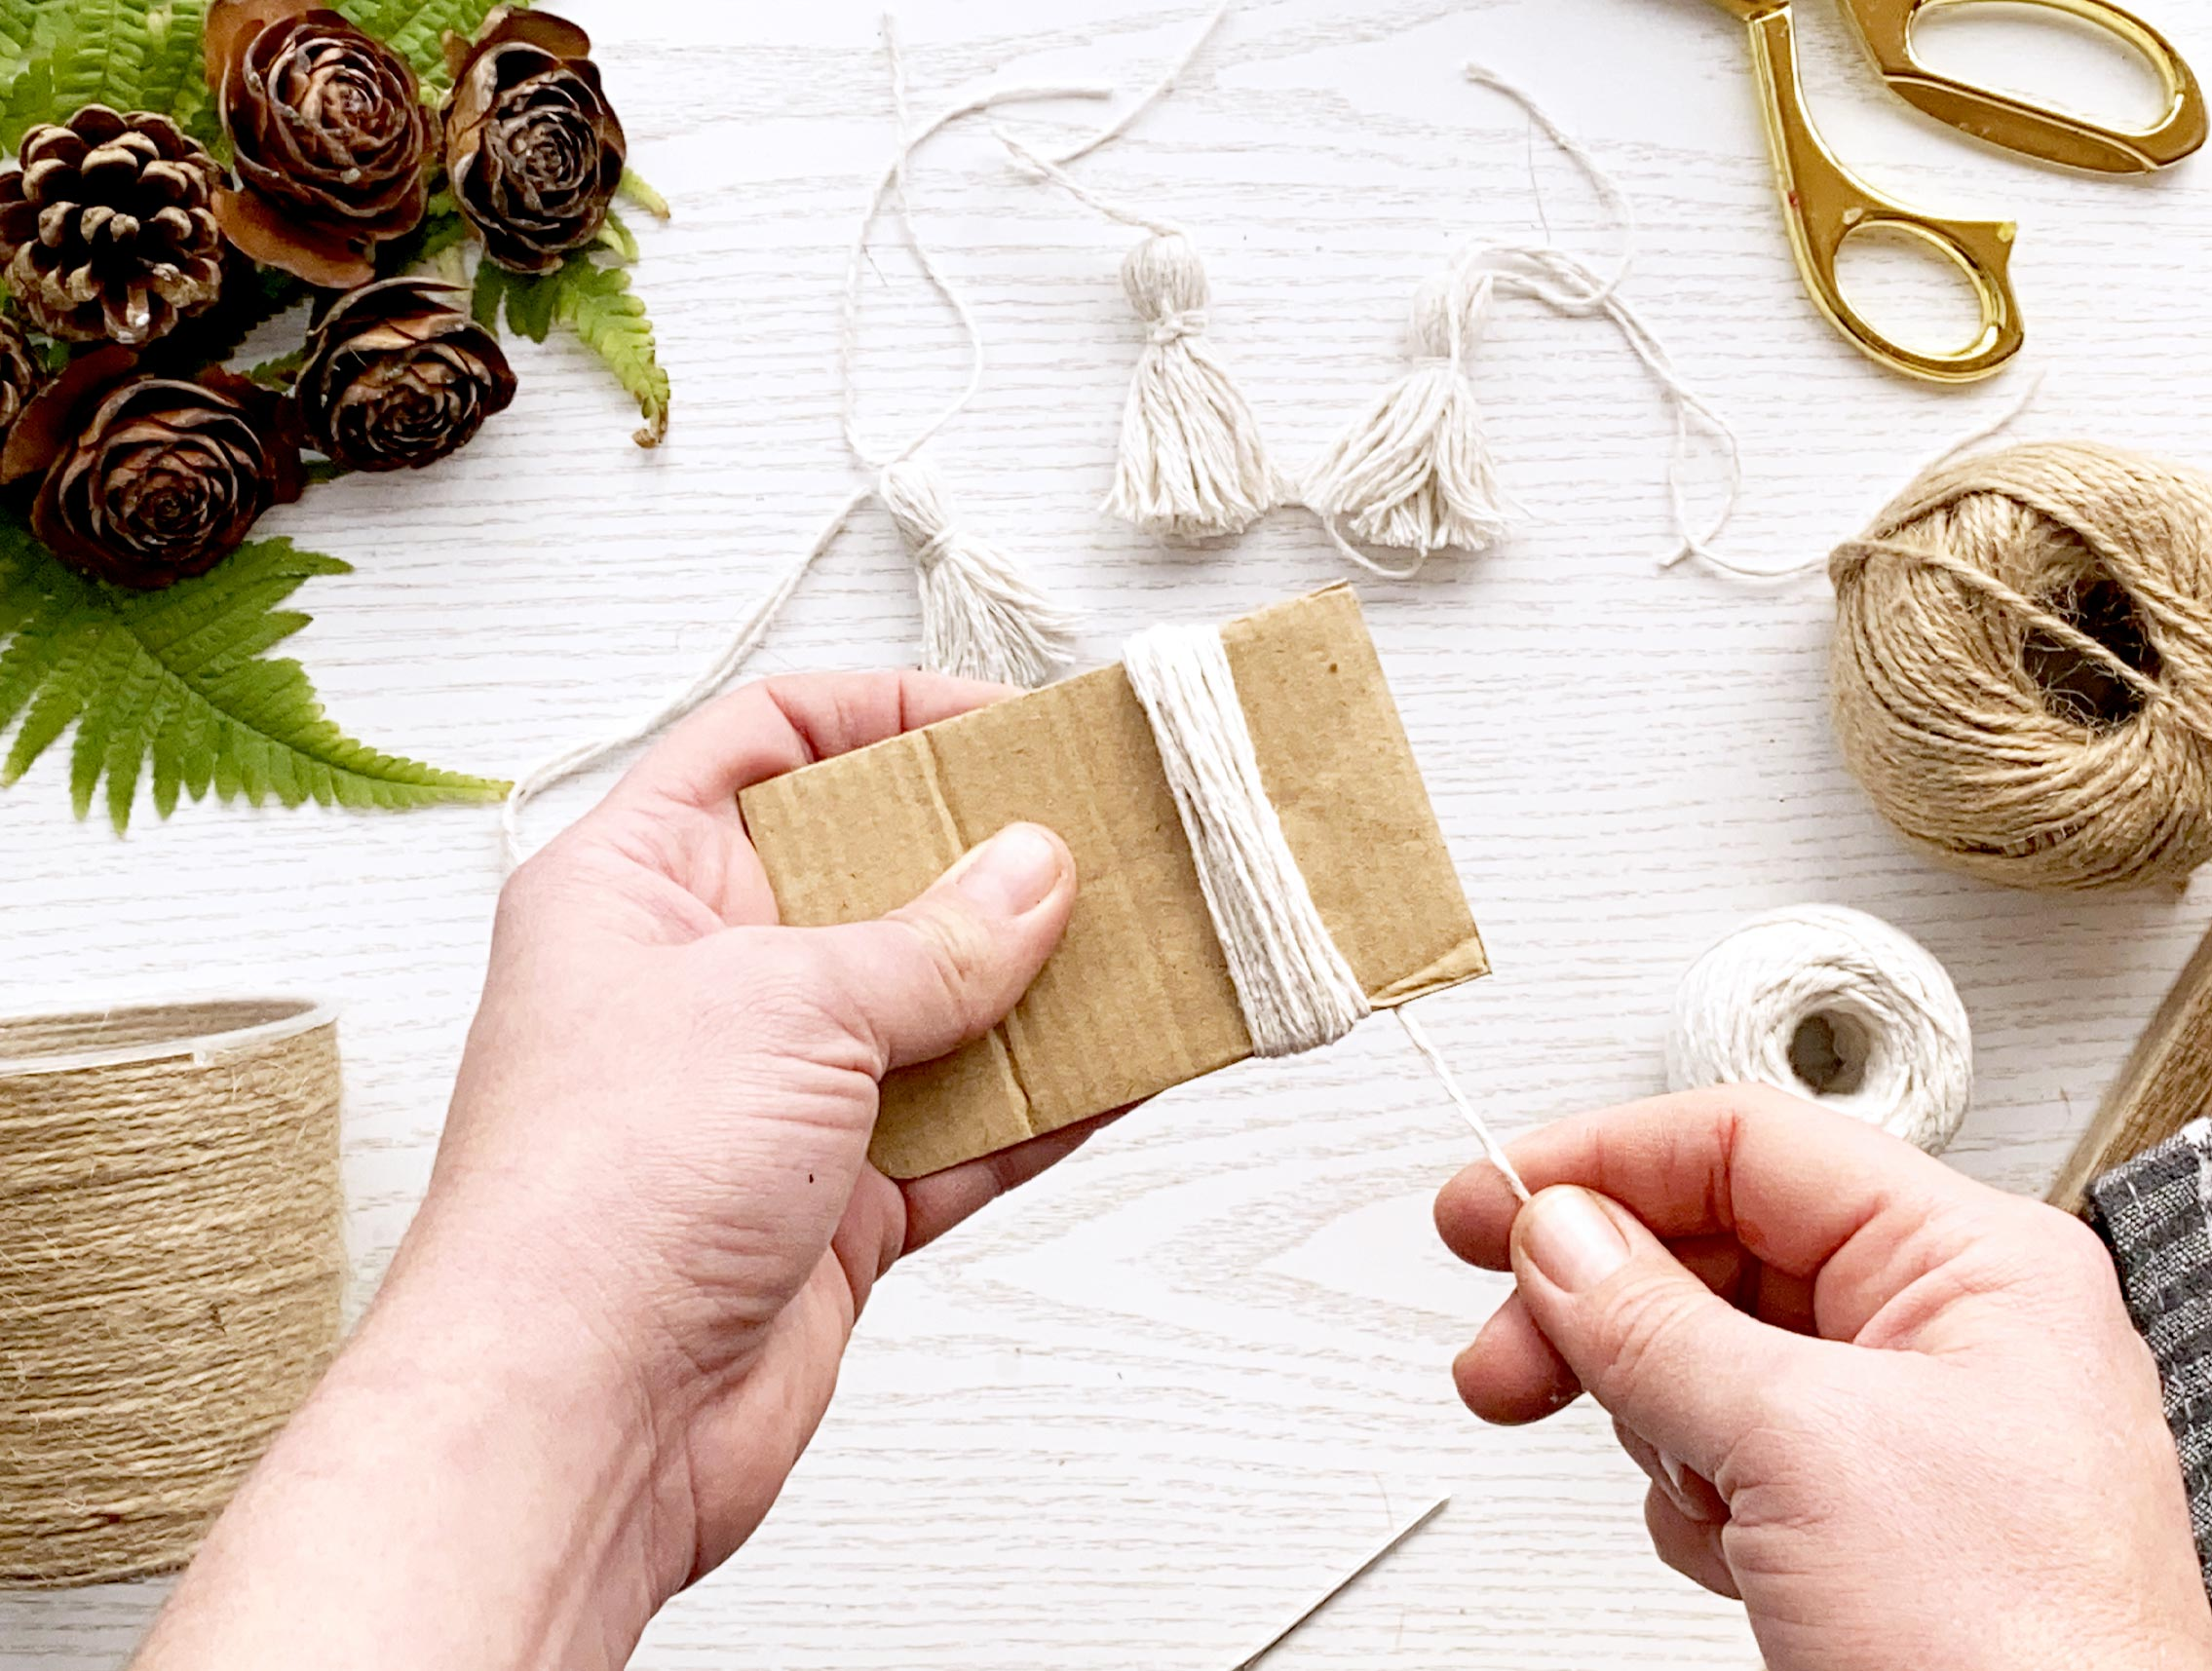 make your tassels – do this by taking a 7cm thick piece of card, and wrap the white string around it about 30 times.